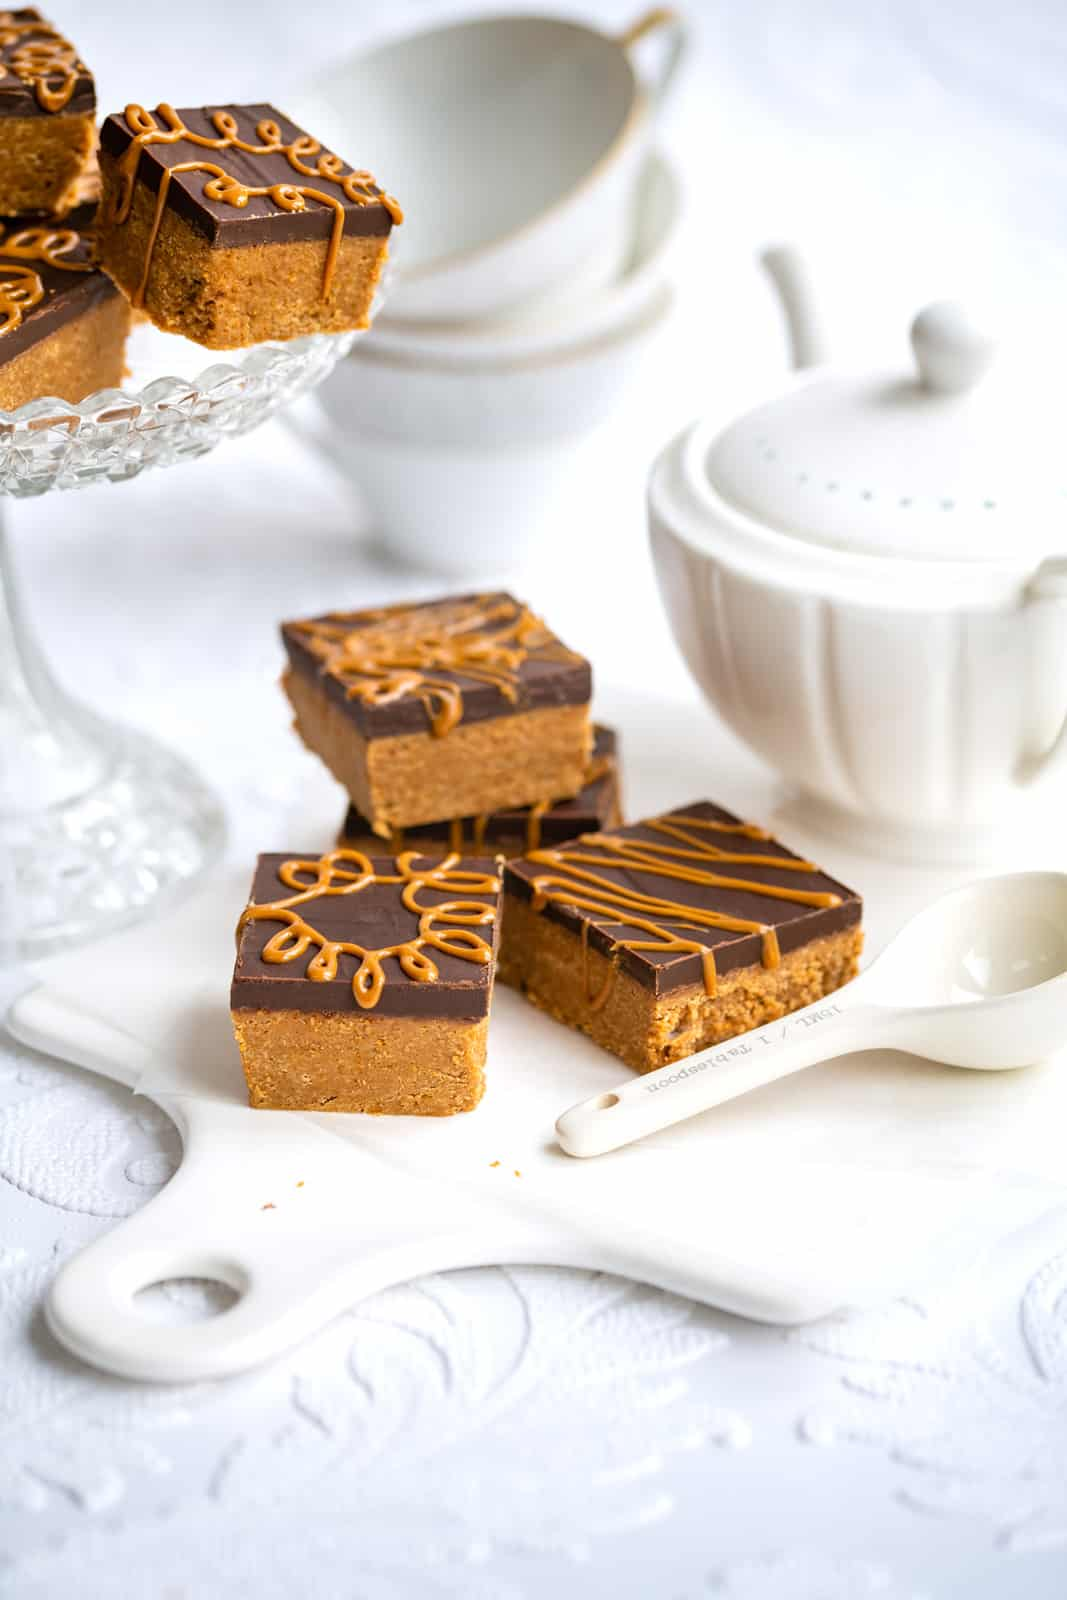 Biscoff Cookie bars on a ceramic white board with tea set on the side